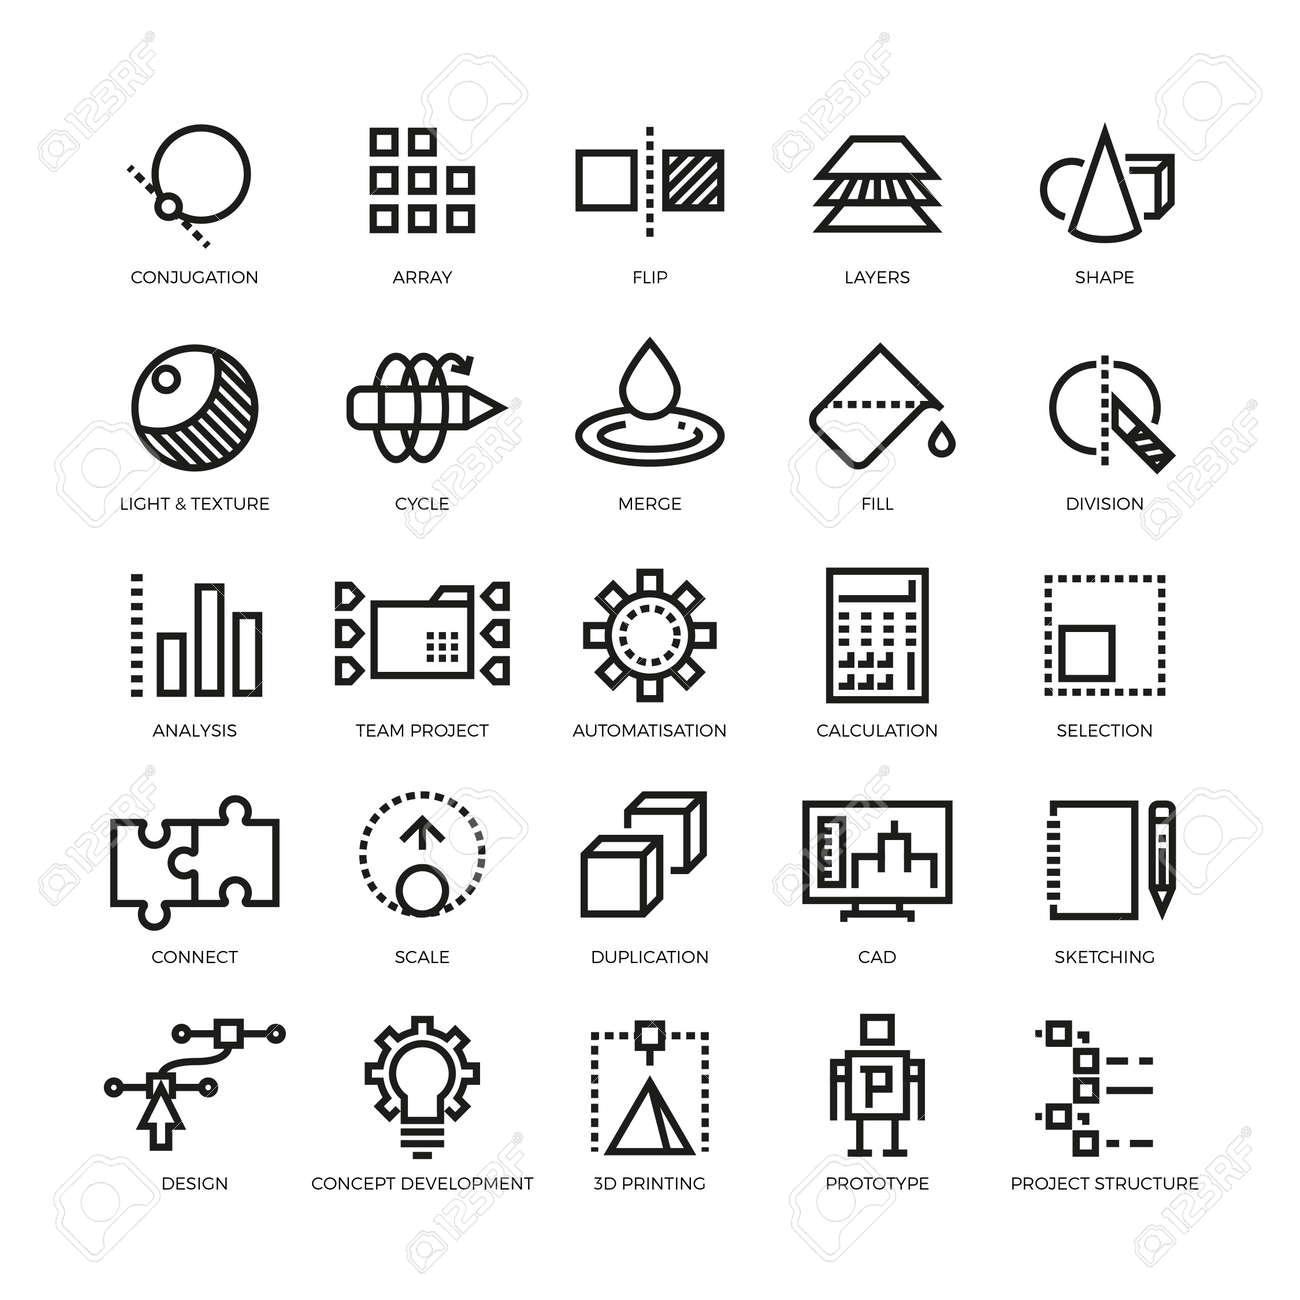 Cad designer, future innovation, database, architecture, 3d model printing vector line icons. Conjugation and array, flip and layer illustration - 165867126